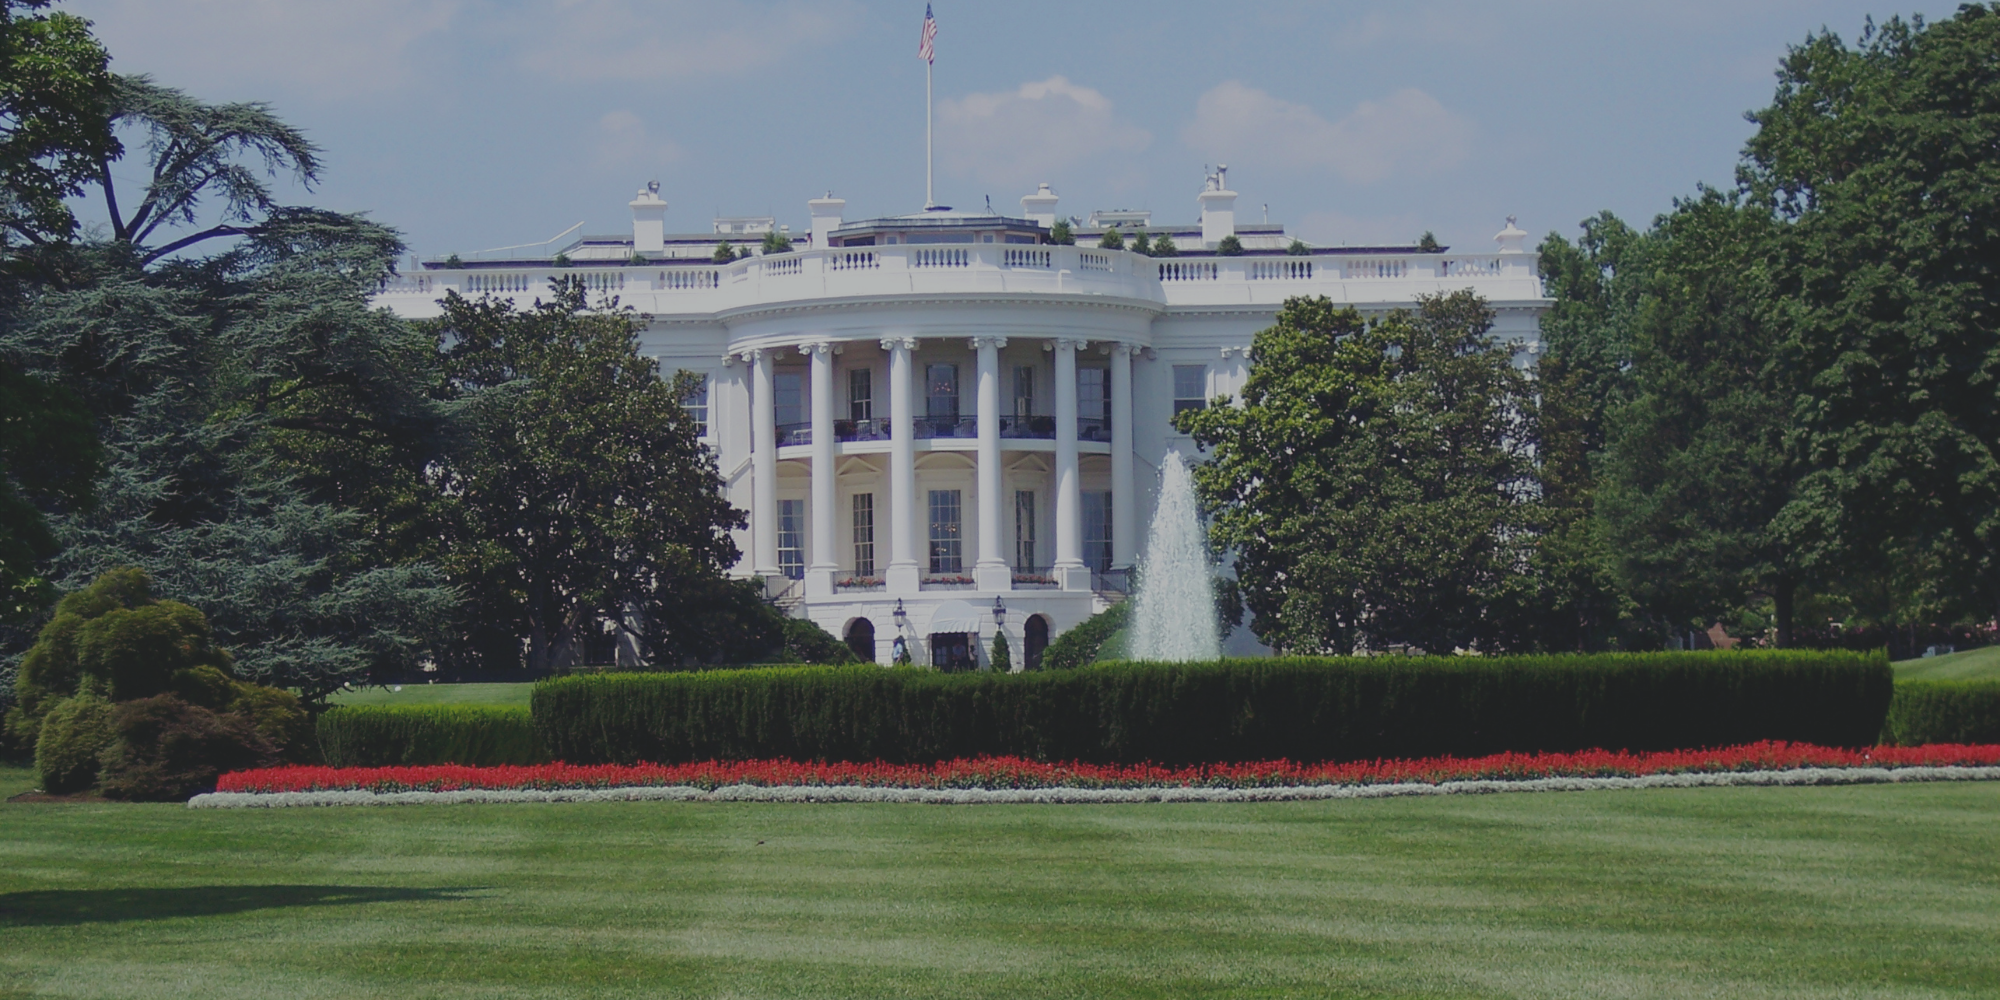 Blog post on President Joe Biden's new Executive Order and how it will change the nation's approach to cybersecurity.